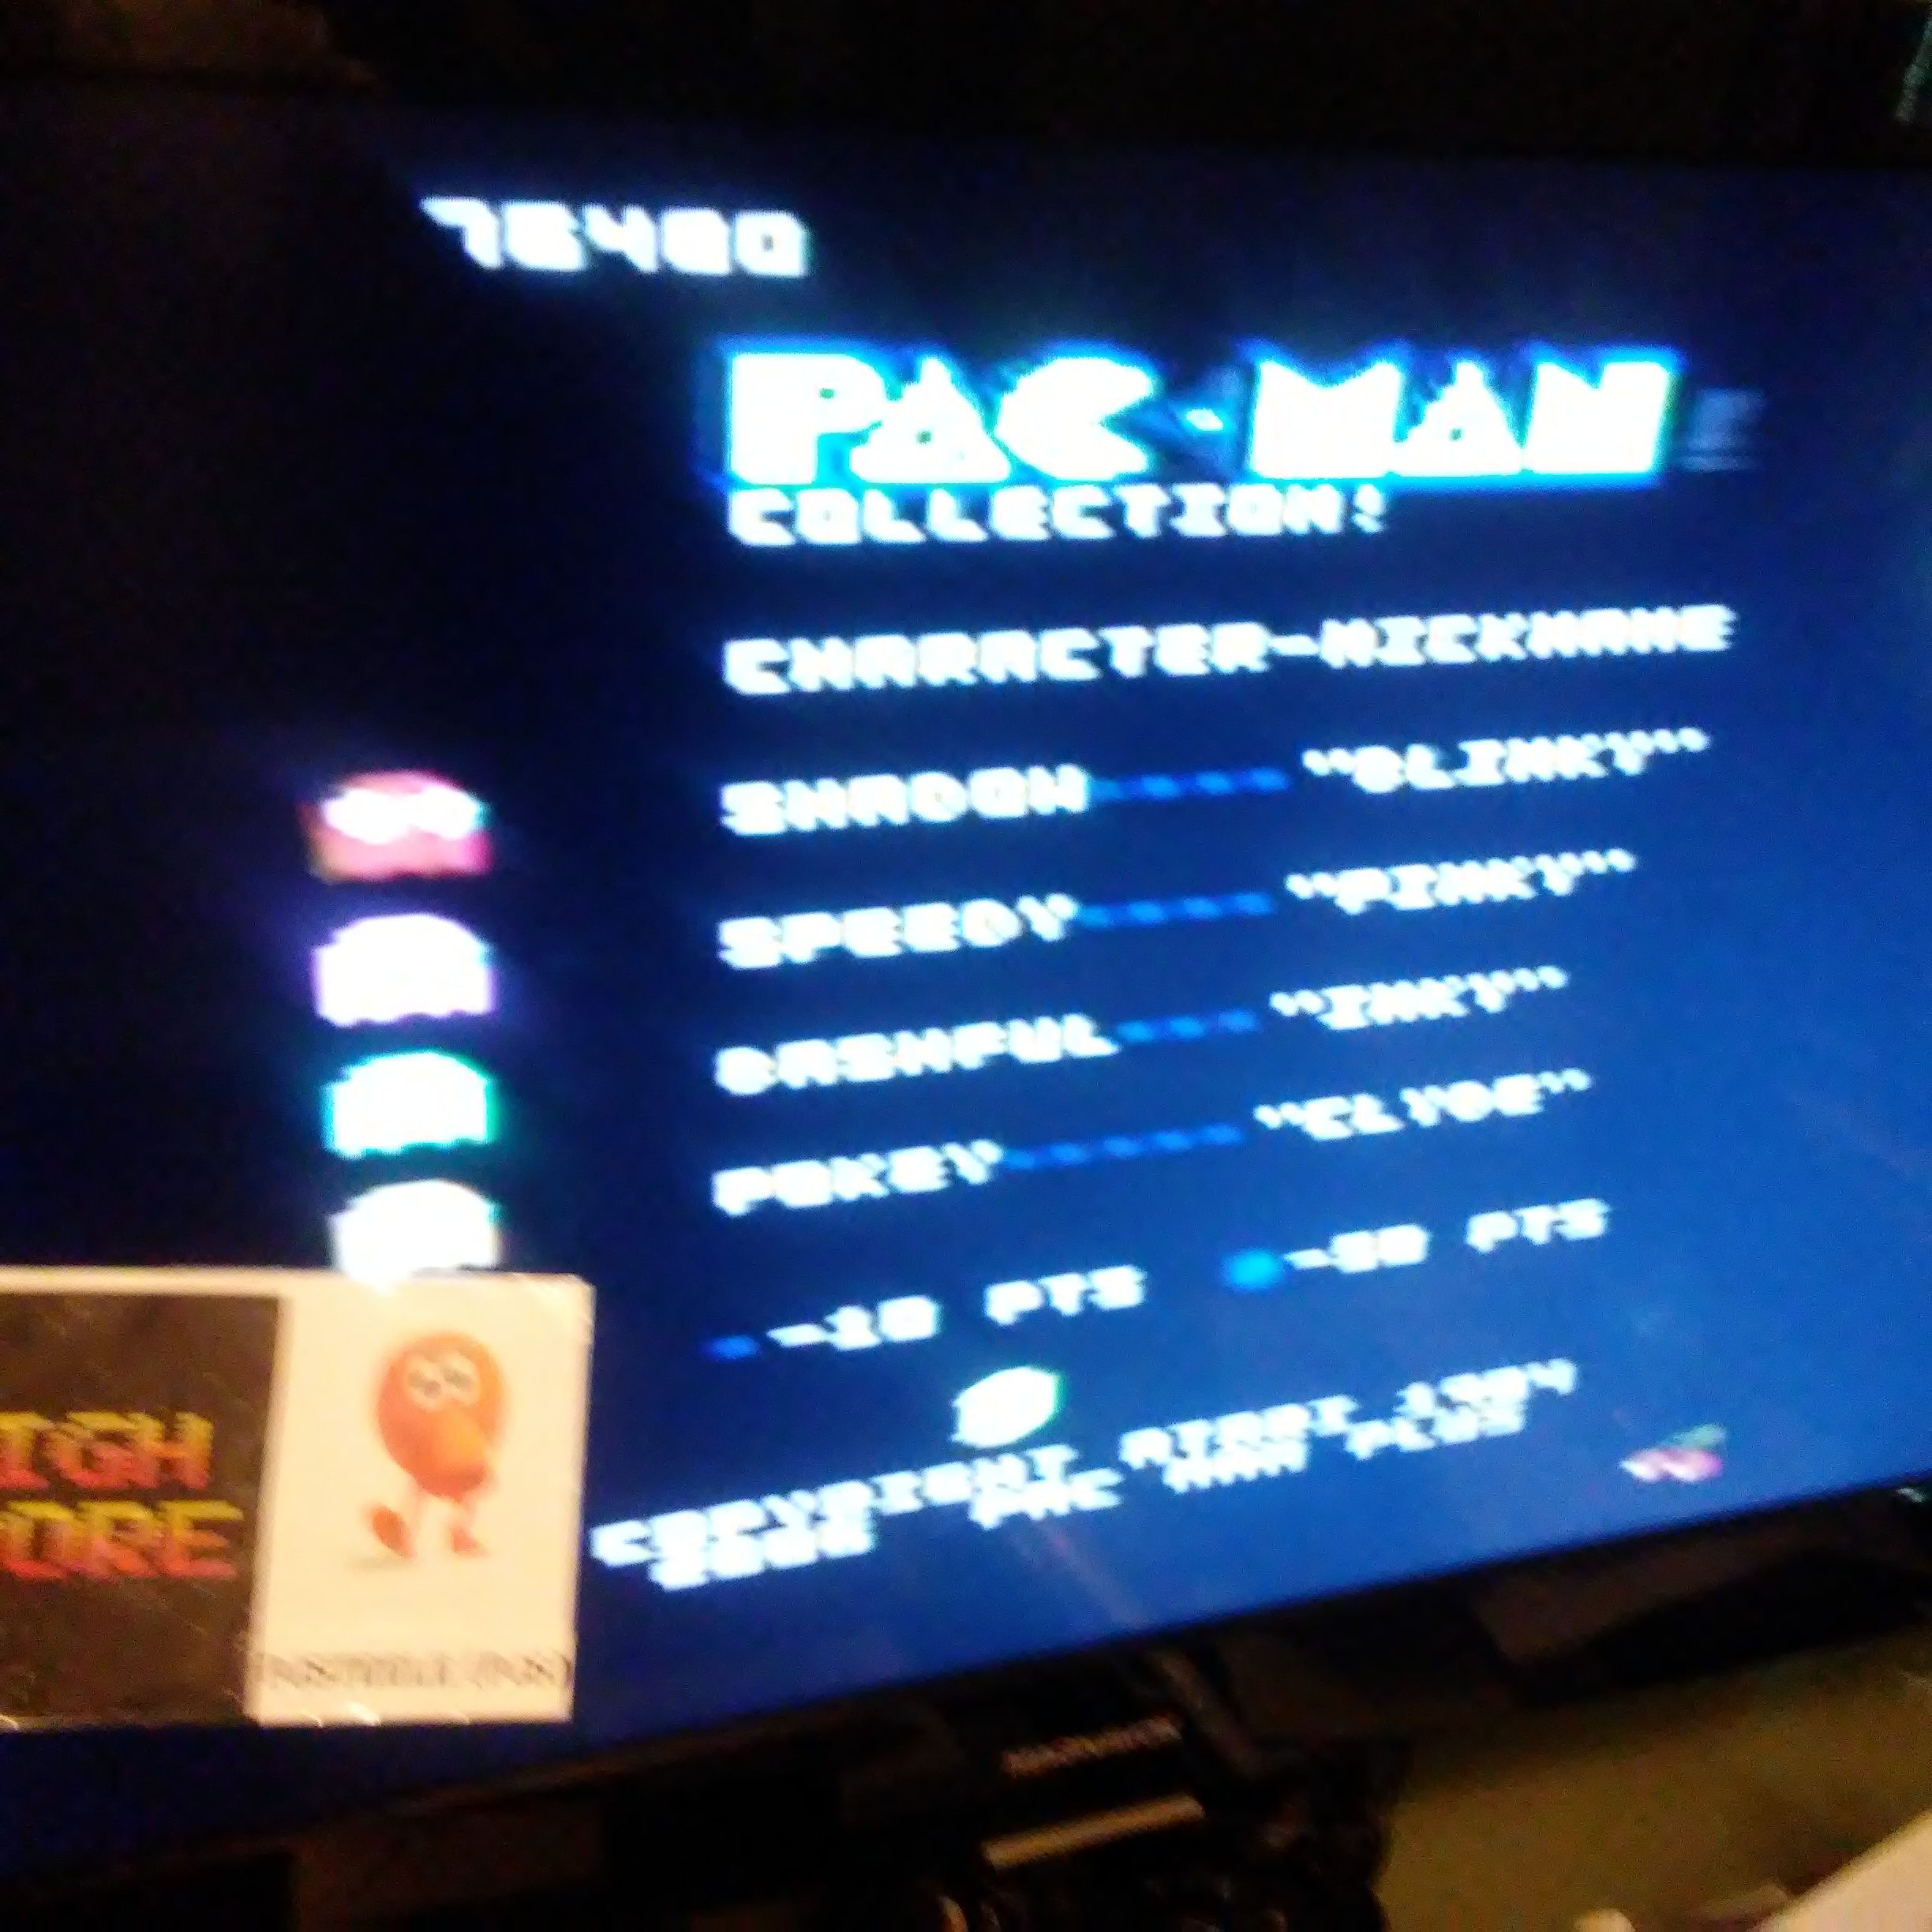 Pjsteele: Pac-Man Collection: Pac-Man [Cherries/Plus Off/Fast On] (Atari 7800) 76,480 points on 2018-06-29 17:24:44